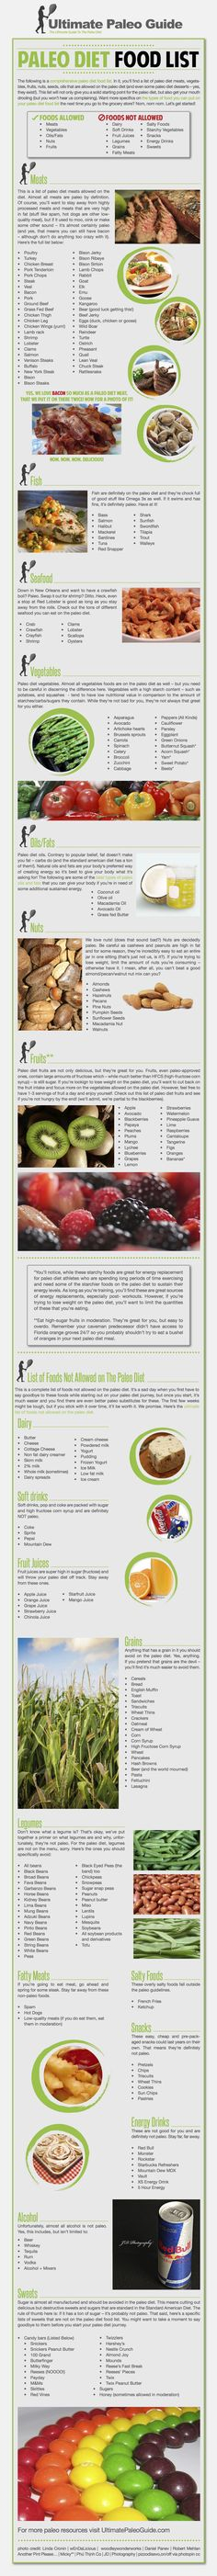 Paleo Diet Food List Infographic @Bryttin Jones-- is this what you were telling me about?